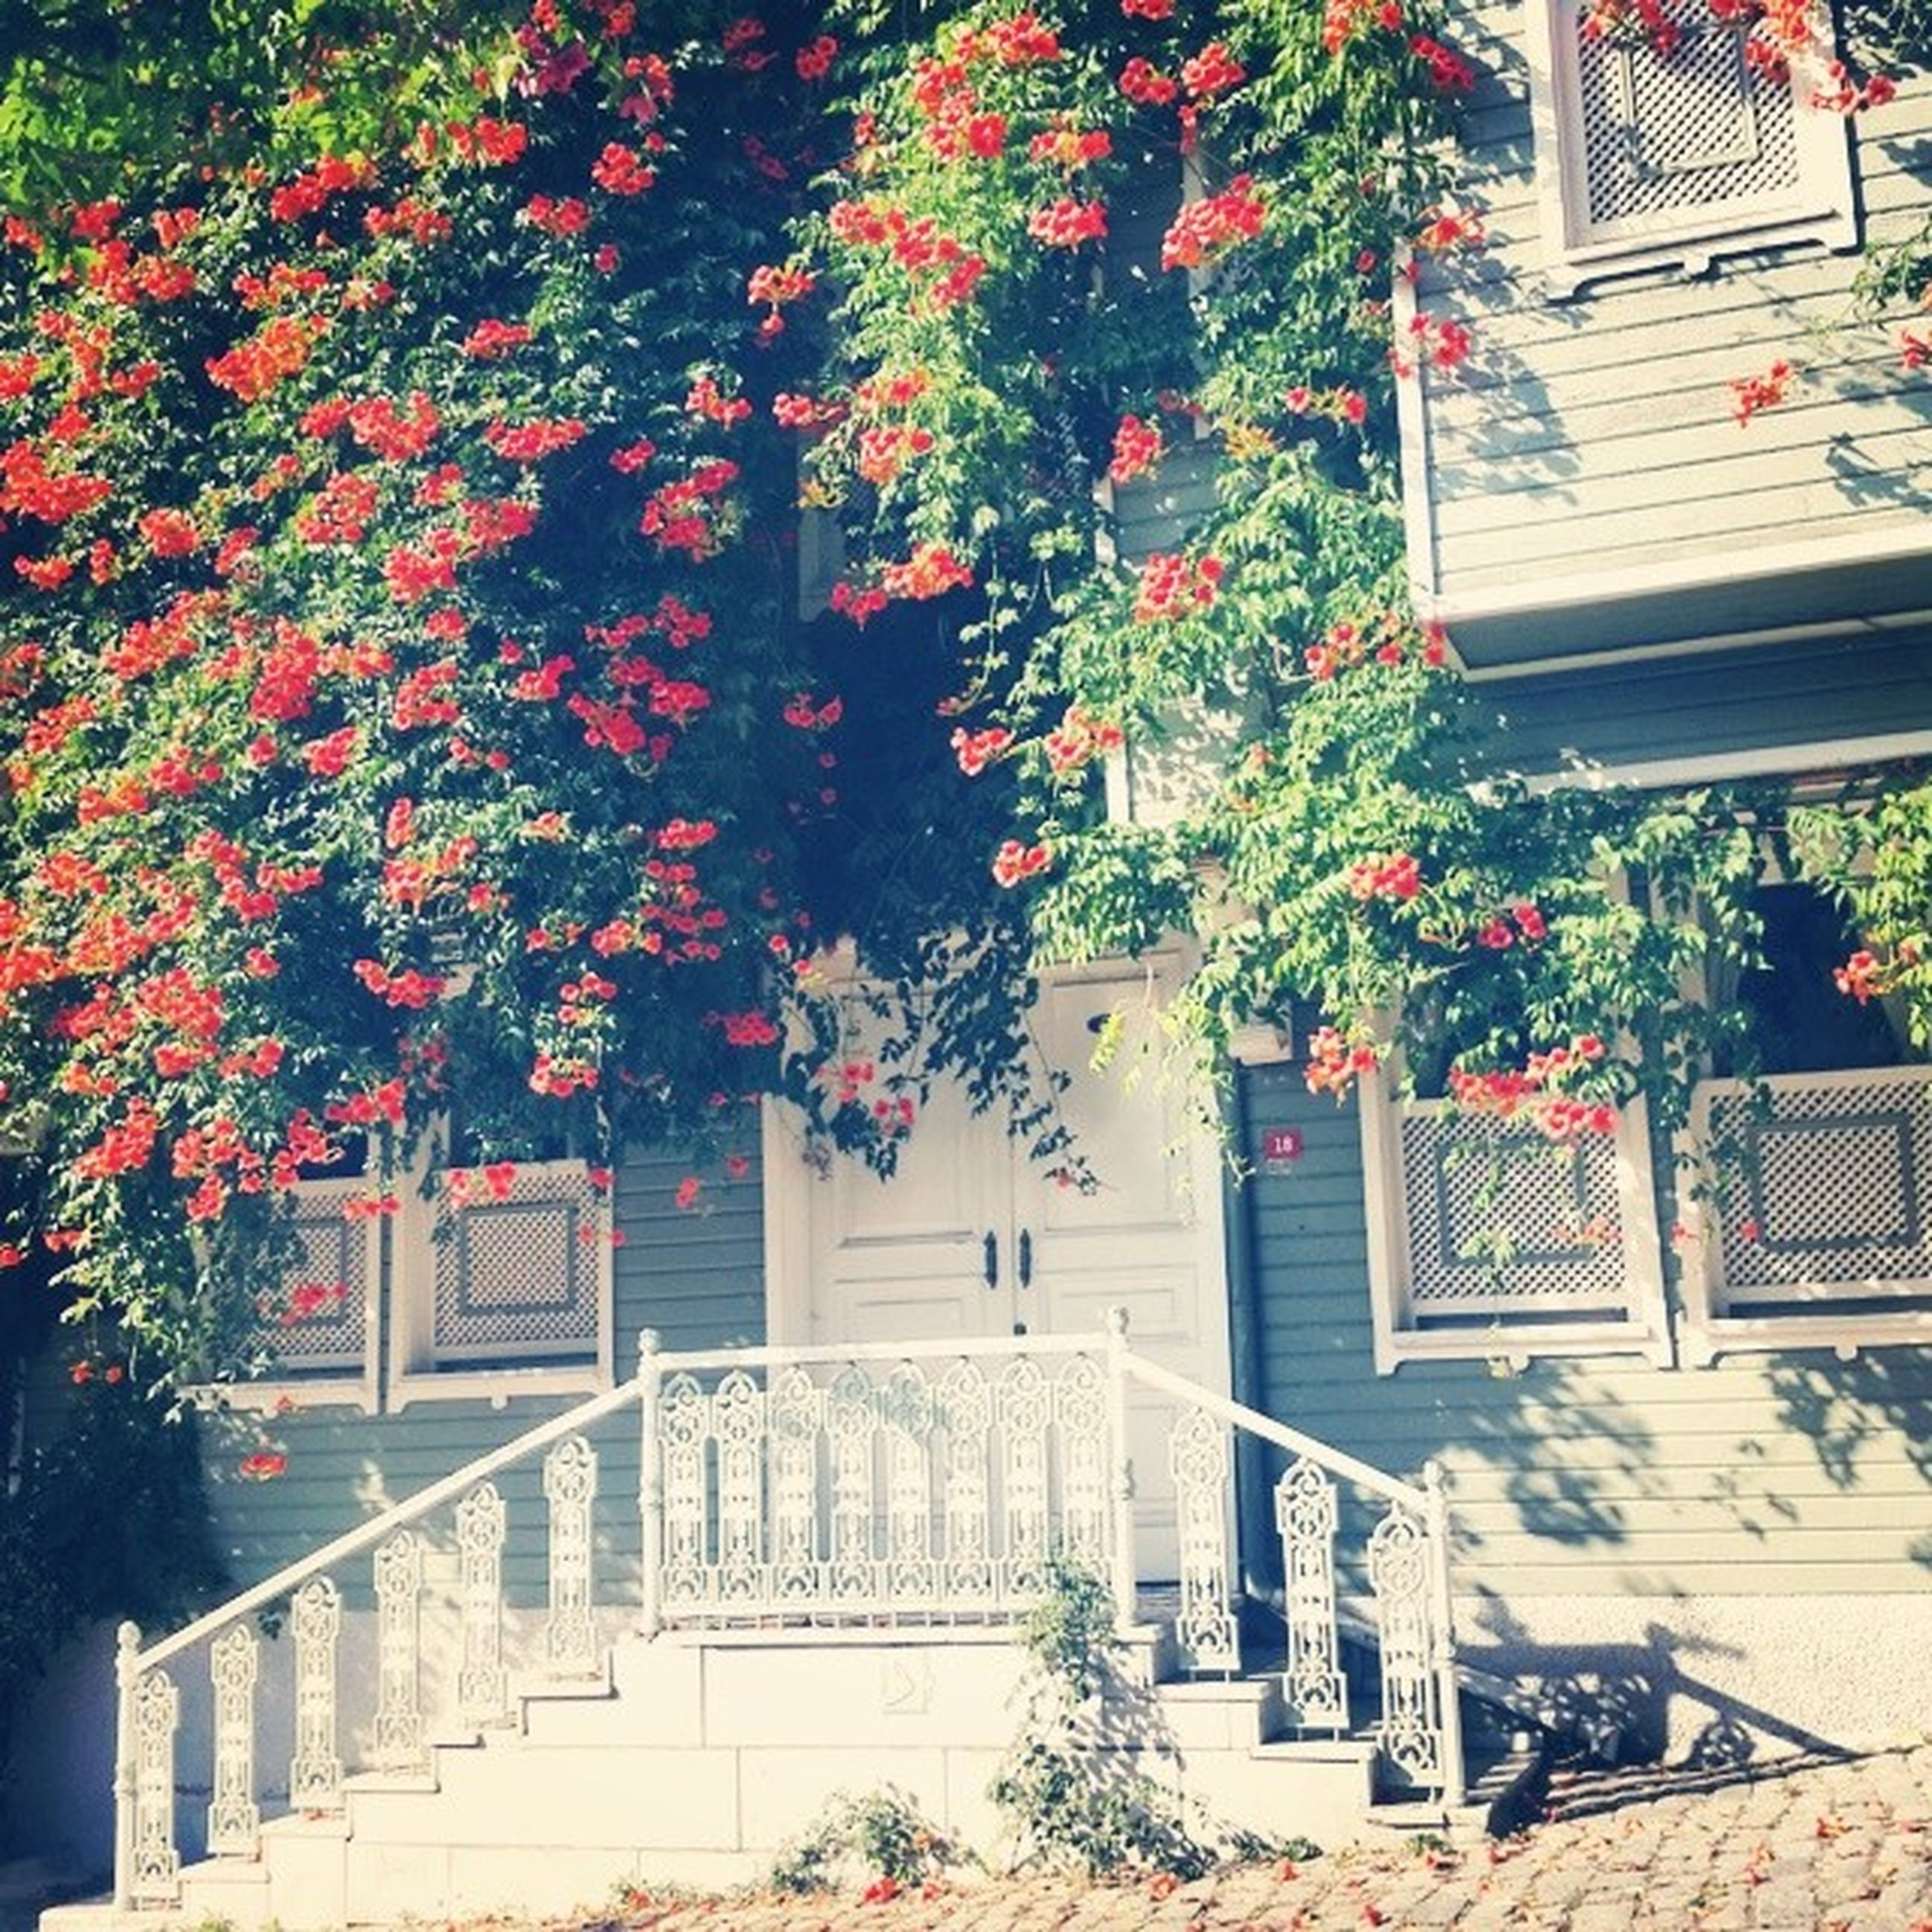 building exterior, built structure, architecture, tree, growth, flower, plant, house, branch, sunlight, nature, potted plant, day, outdoors, no people, park - man made space, residential building, residential structure, railing, entrance